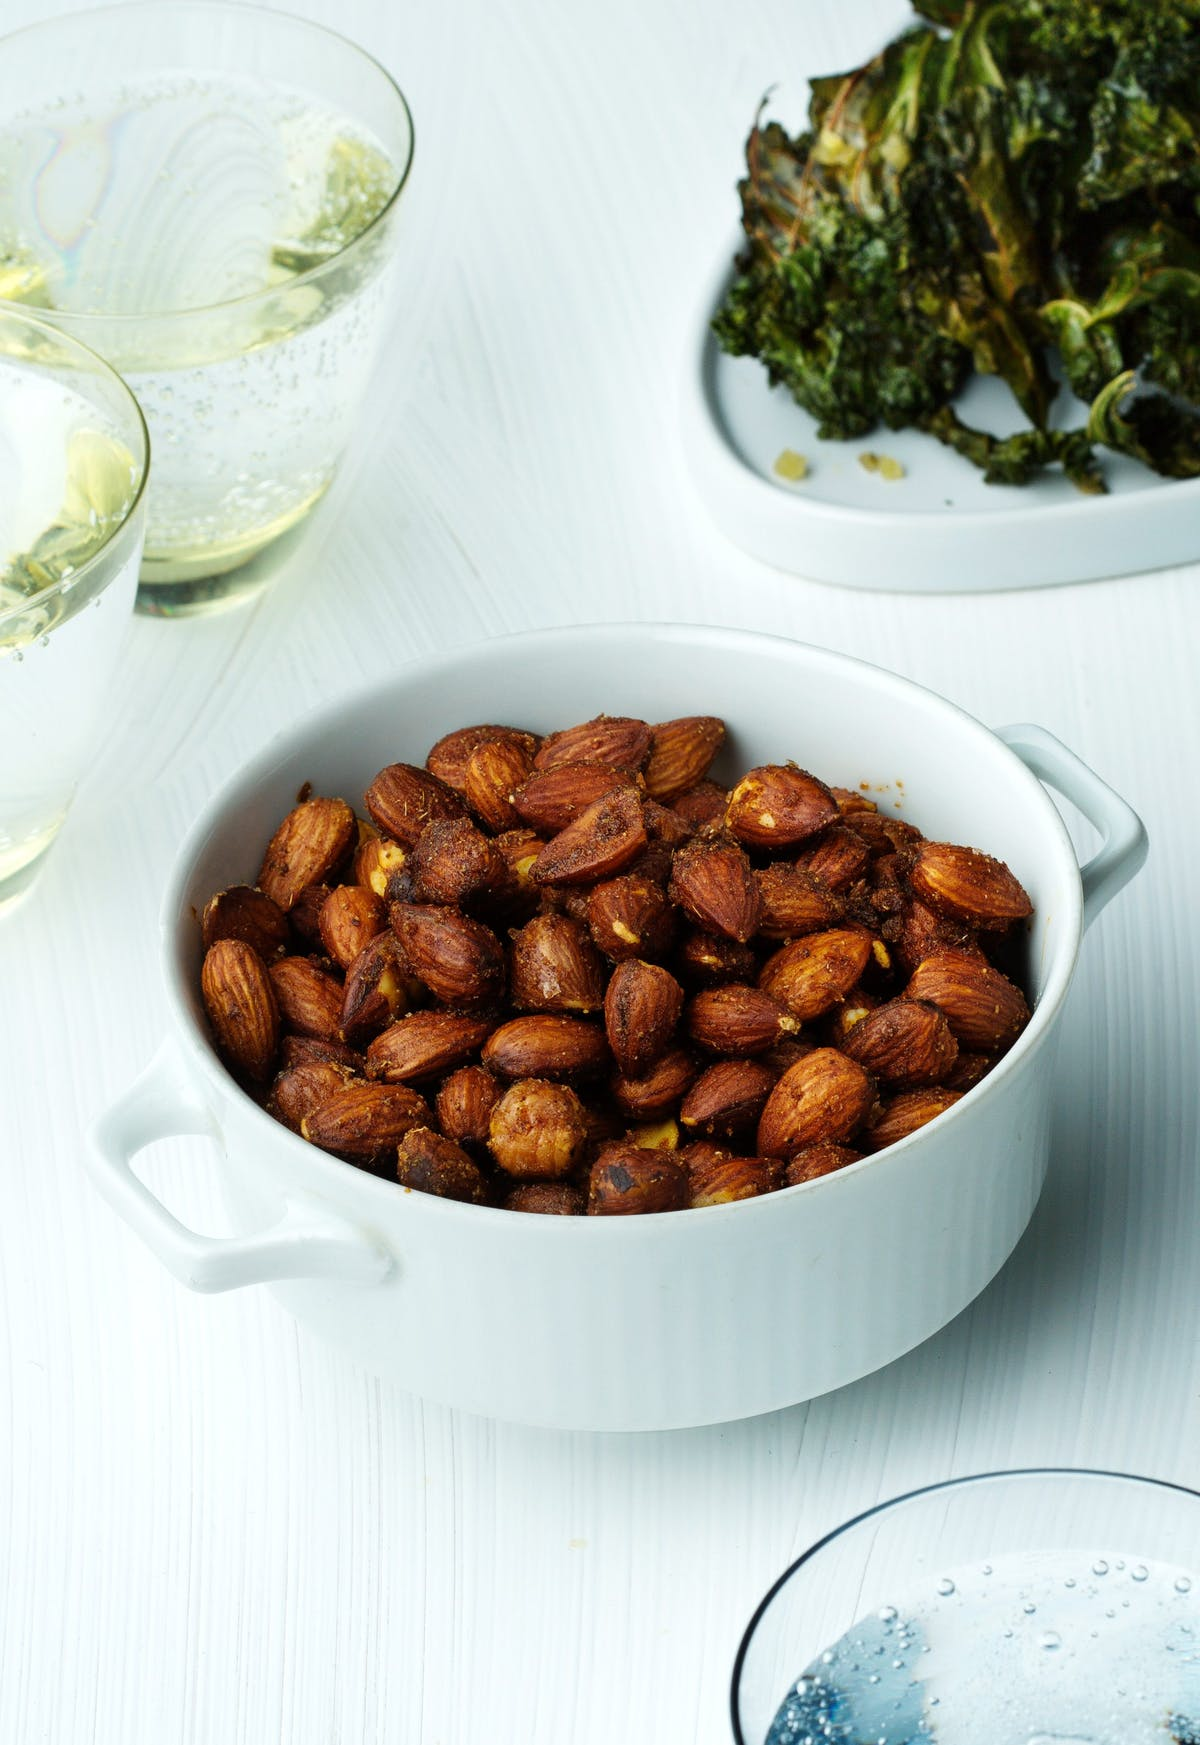 Spicy keto roasted nuts